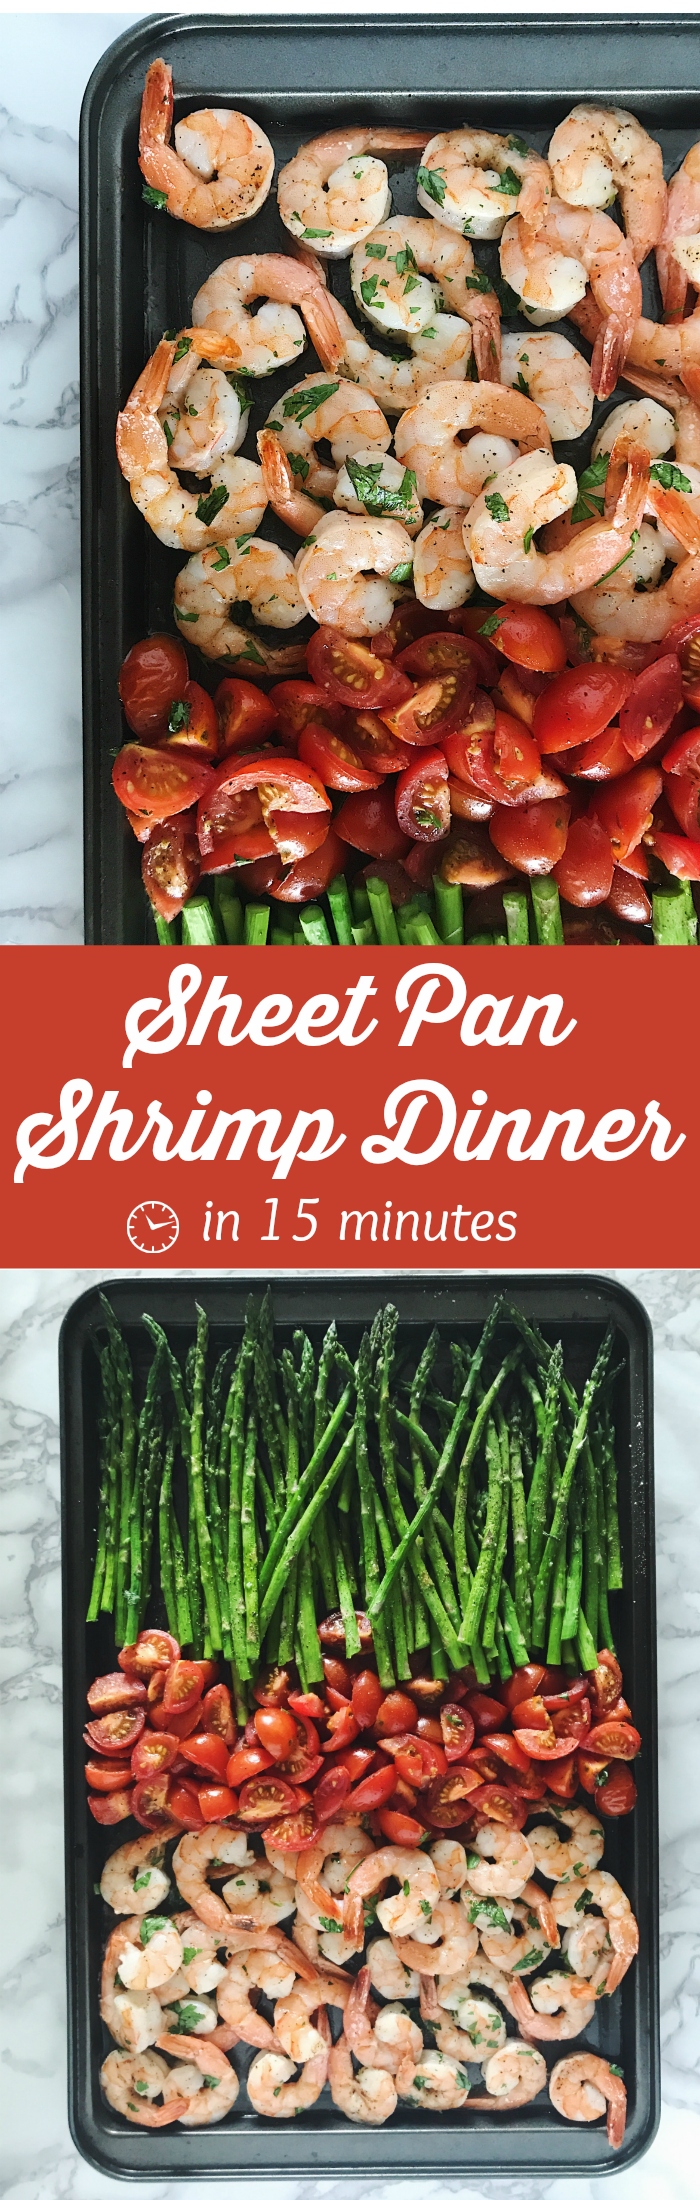 Sheet Pan Shrimp Dinner is a one-sheet wonder that takes just 15 minutes! Shrimp tossed in garlic & fresh parsley will become your favorite weeknight meal.